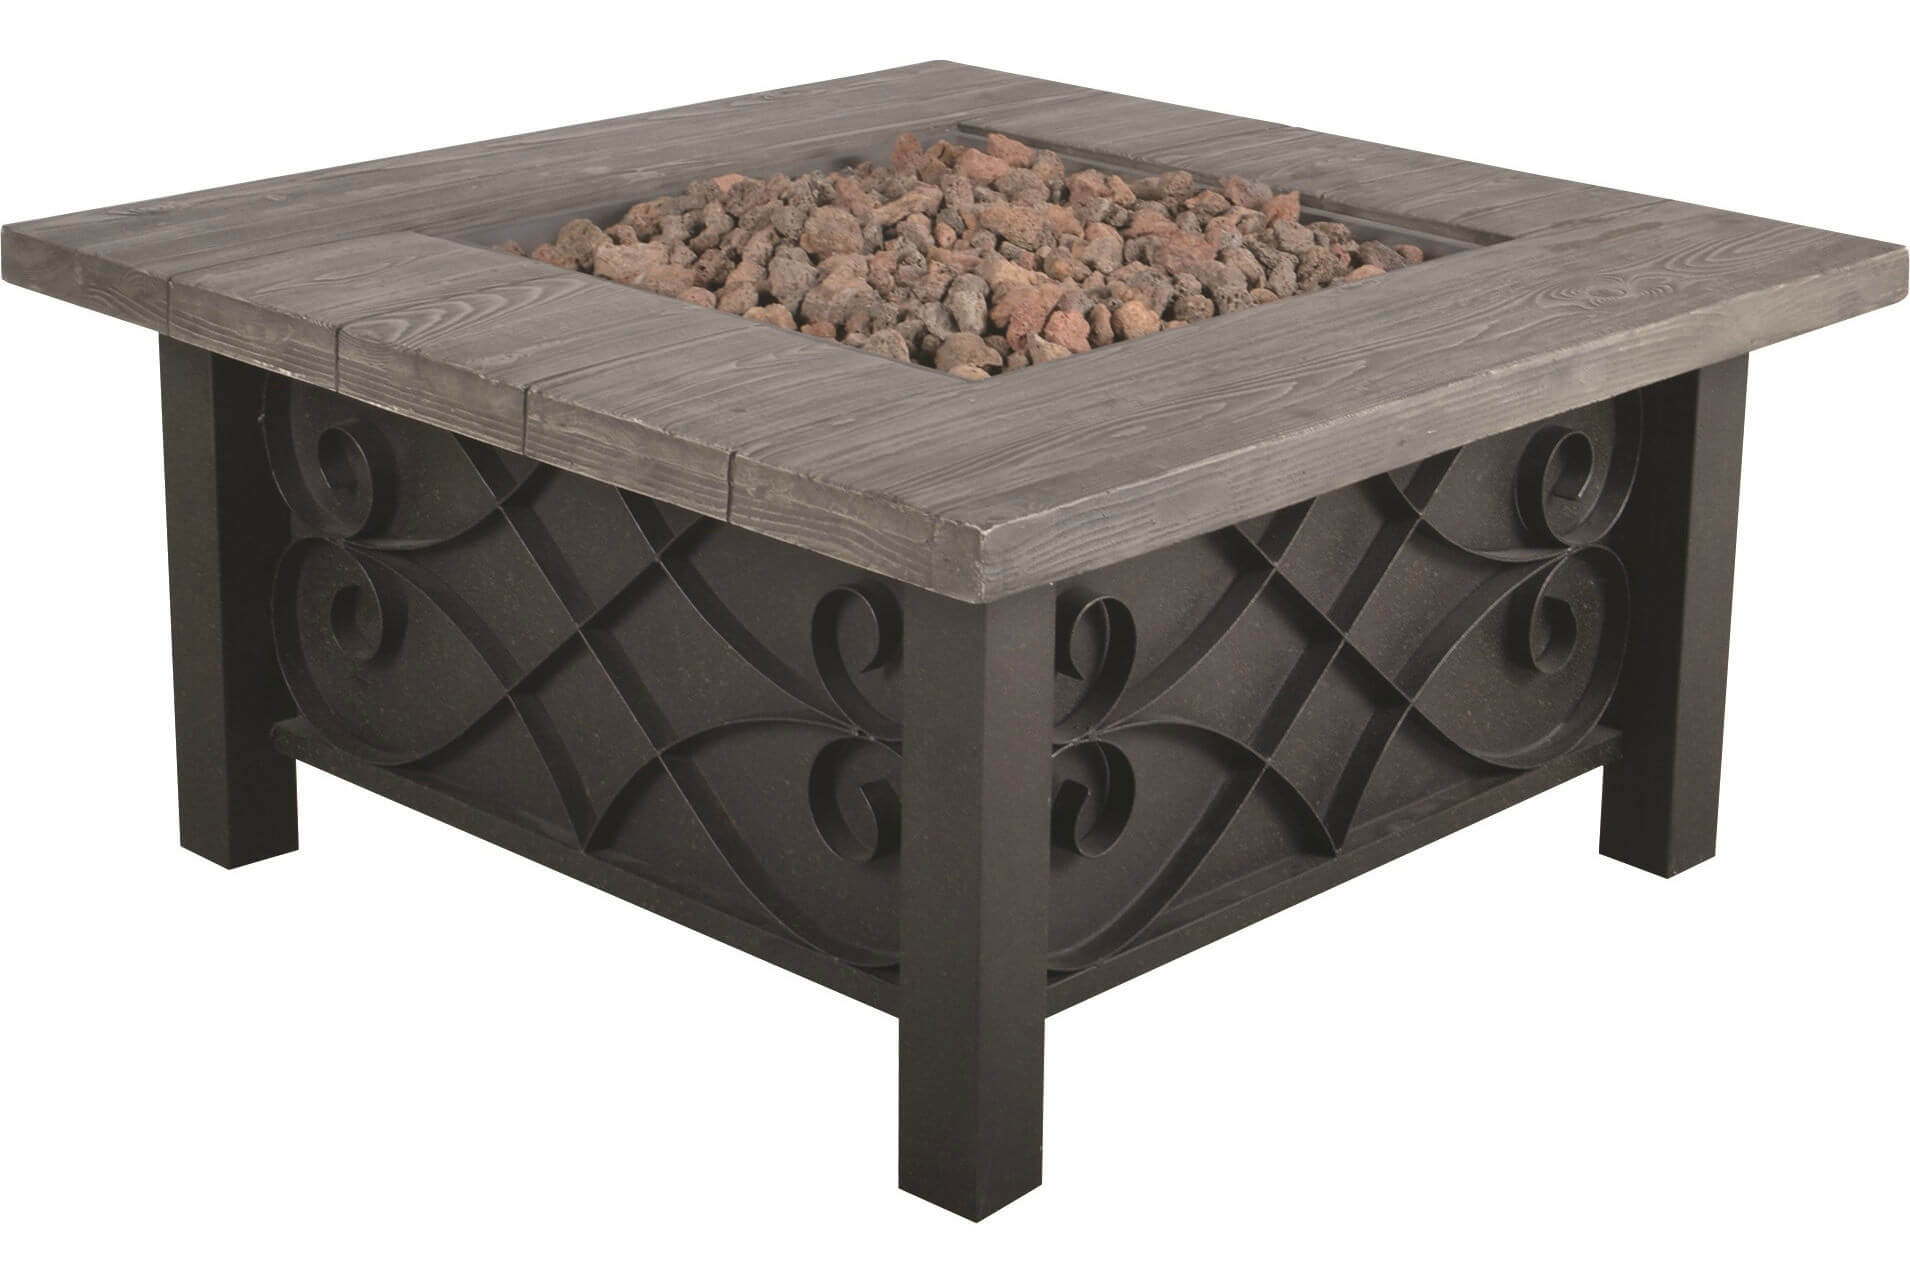 Get this charming and rustic steel propane patio fire pit with table ledge to give your backyard a rustic glow. The gas burner in this fire pit can reach up to 50,000 BTUs and you can even use it as a table without worrying about the heat. It comes with its very own lava rock kit and gas hose.